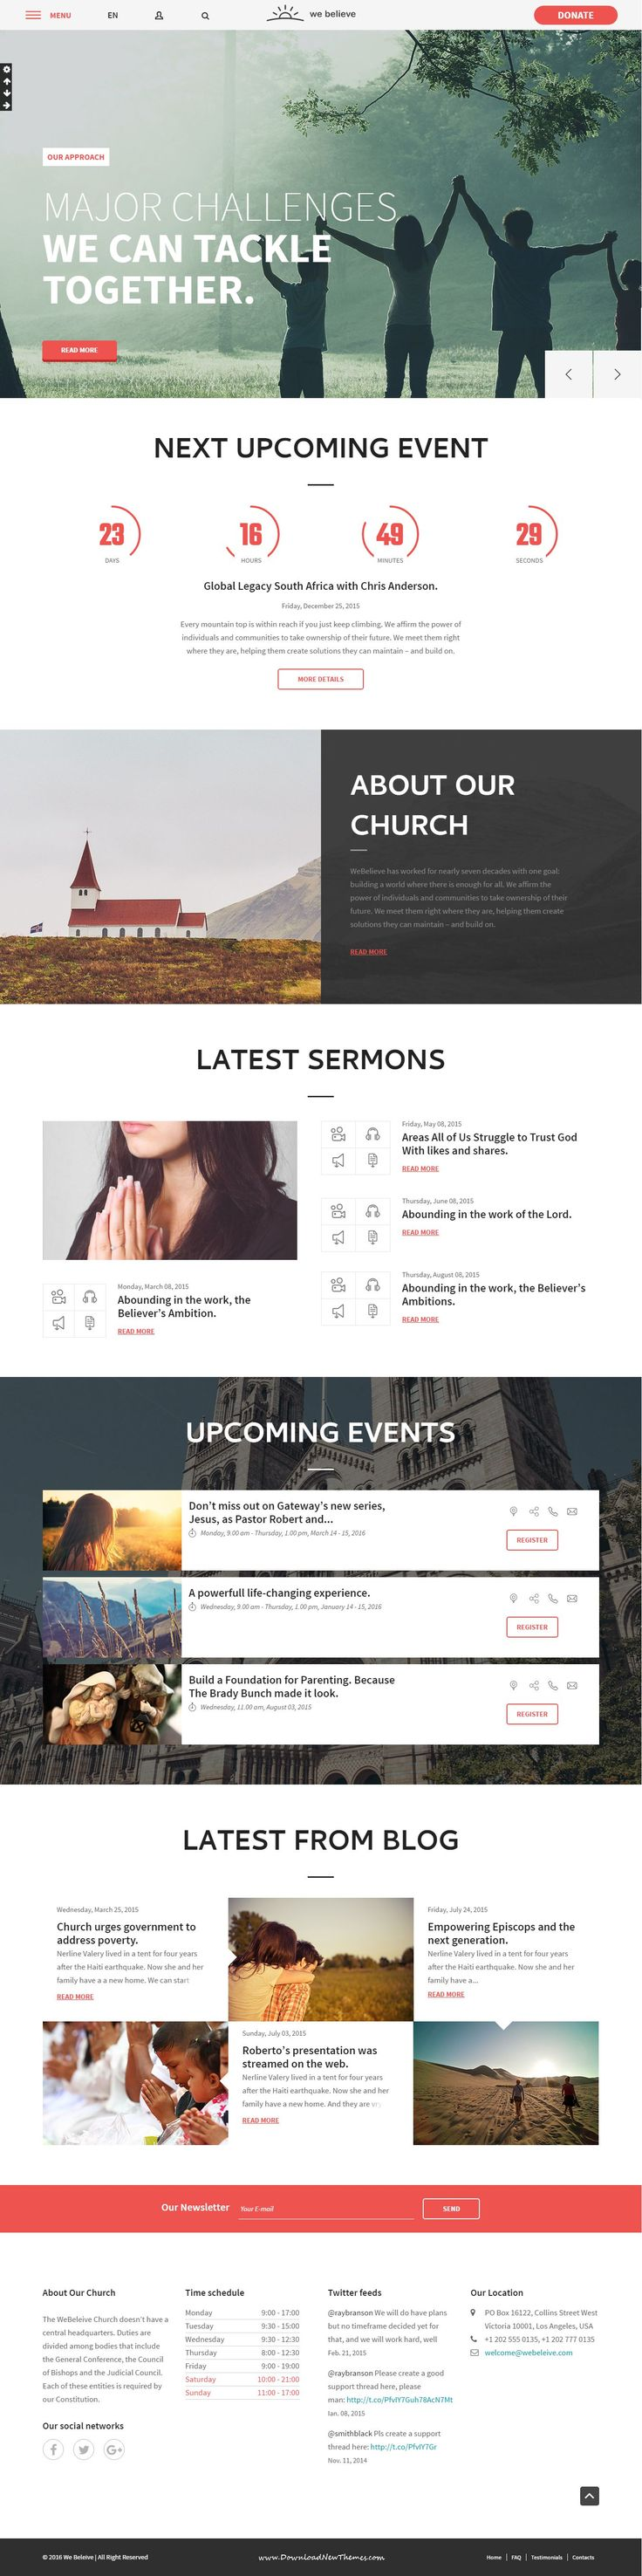 WeBelieve - Church, Charity, Nonprofit & Fundraising Responsive HTML5 Template